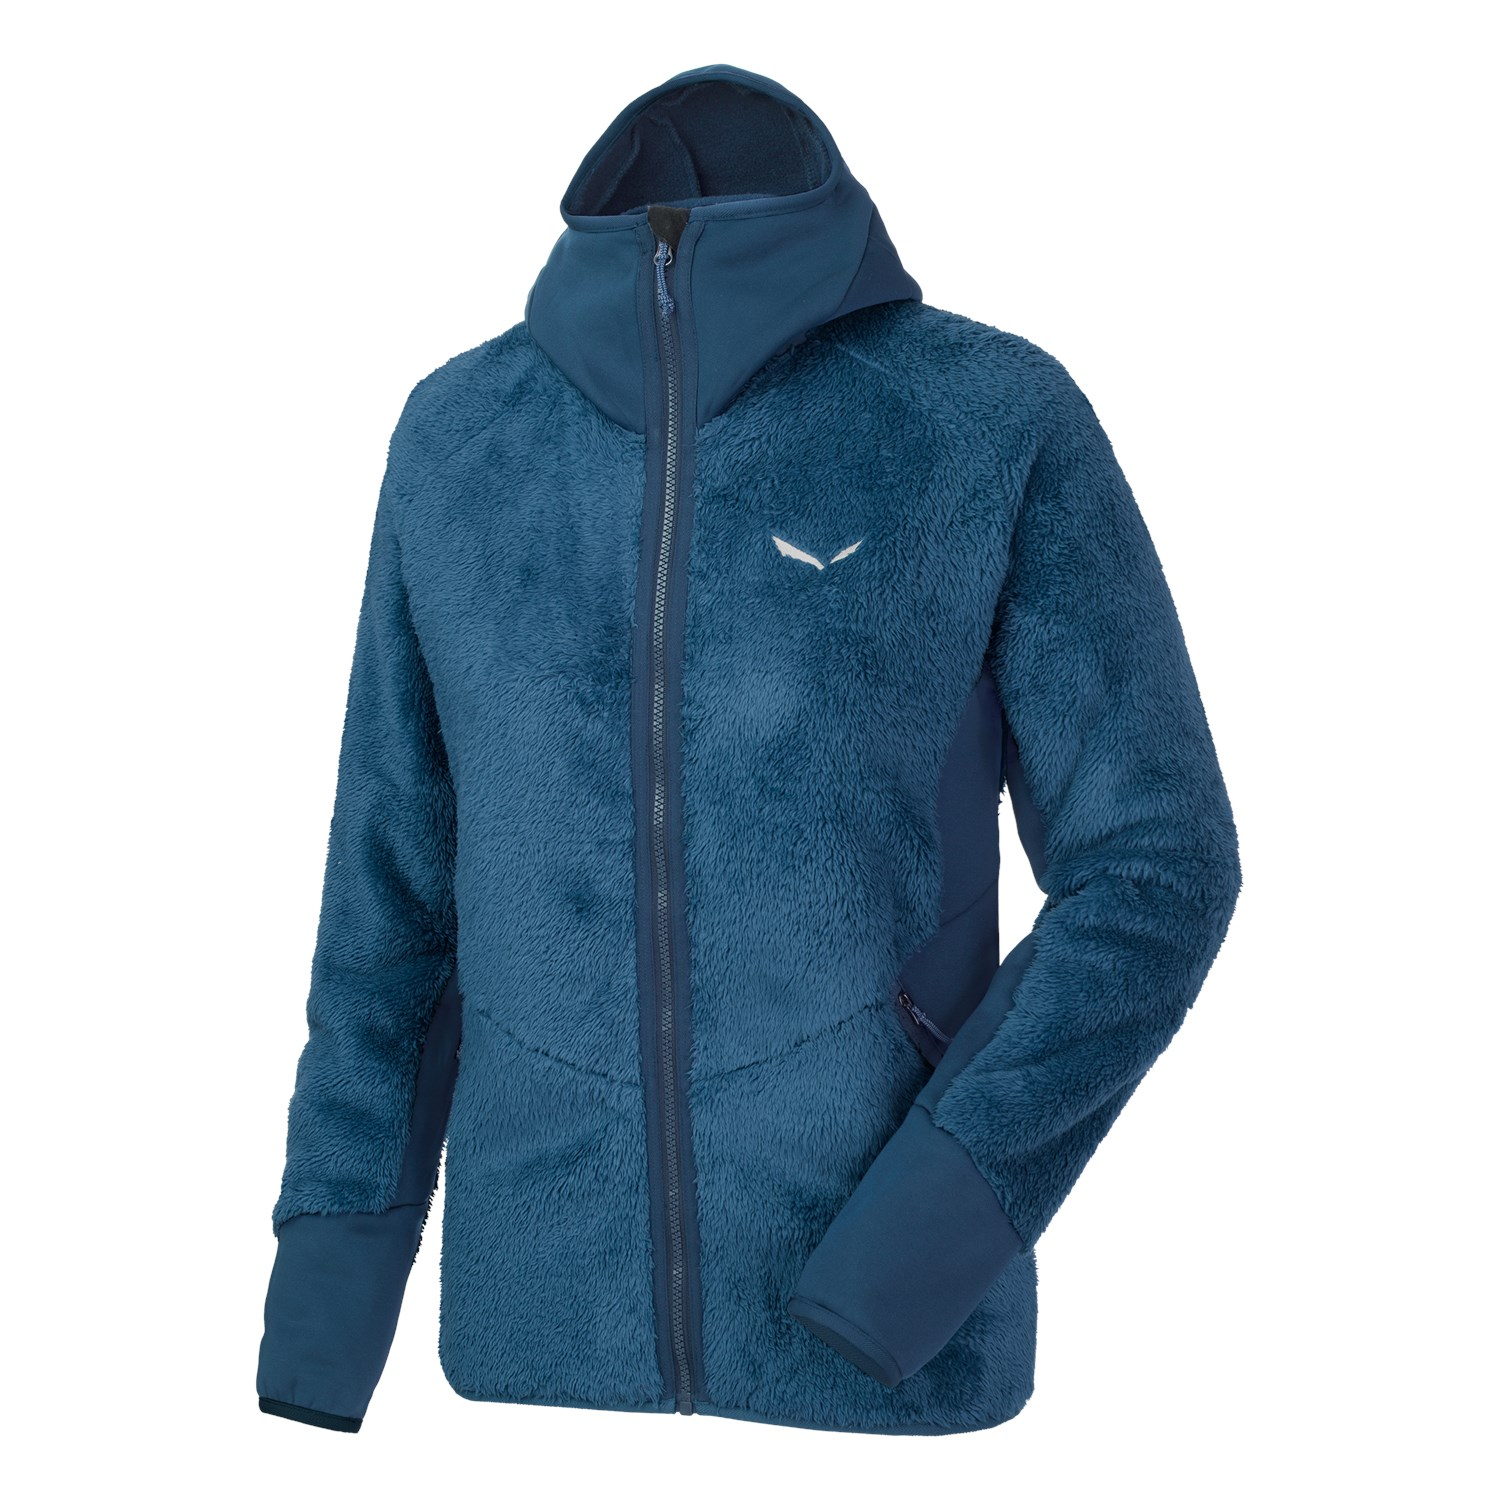 Salewa Damen Puez Warm Polarlite Full-Zip Hoody - blue poseidon - 38